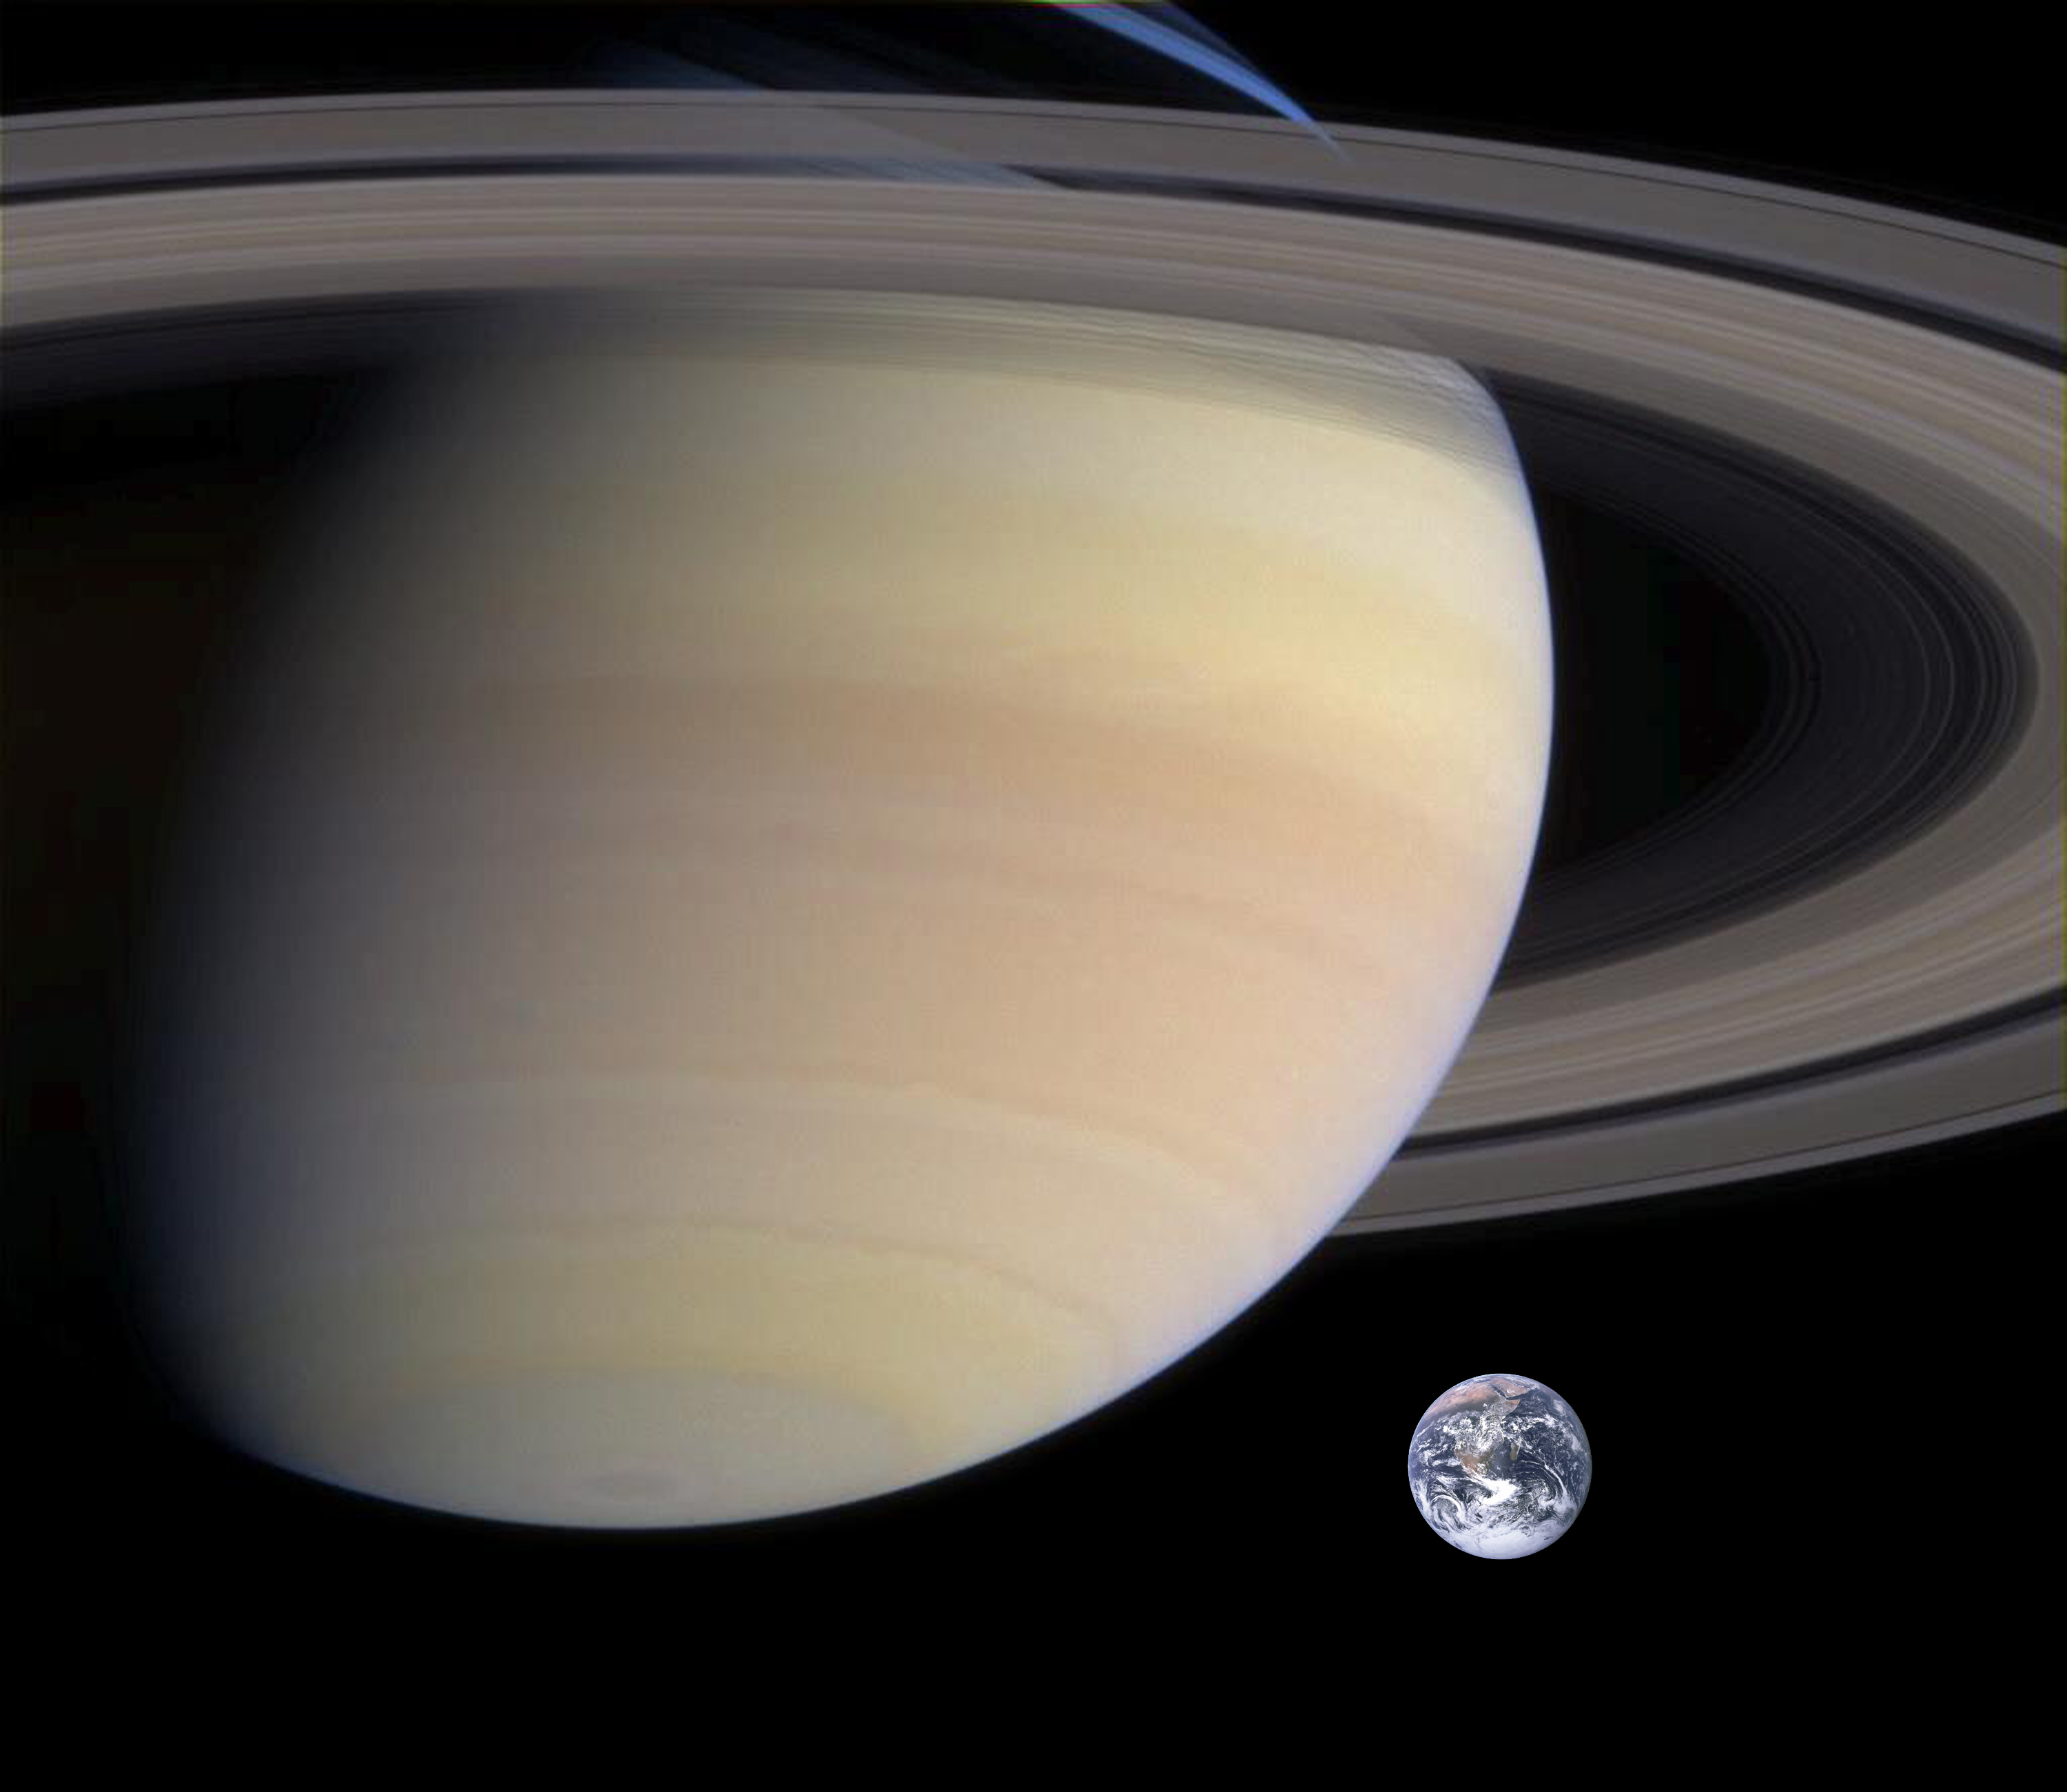 Compare Stock Charts: Comparison of Saturn and Earth - Free Public Domain Stock Photo ,Chart